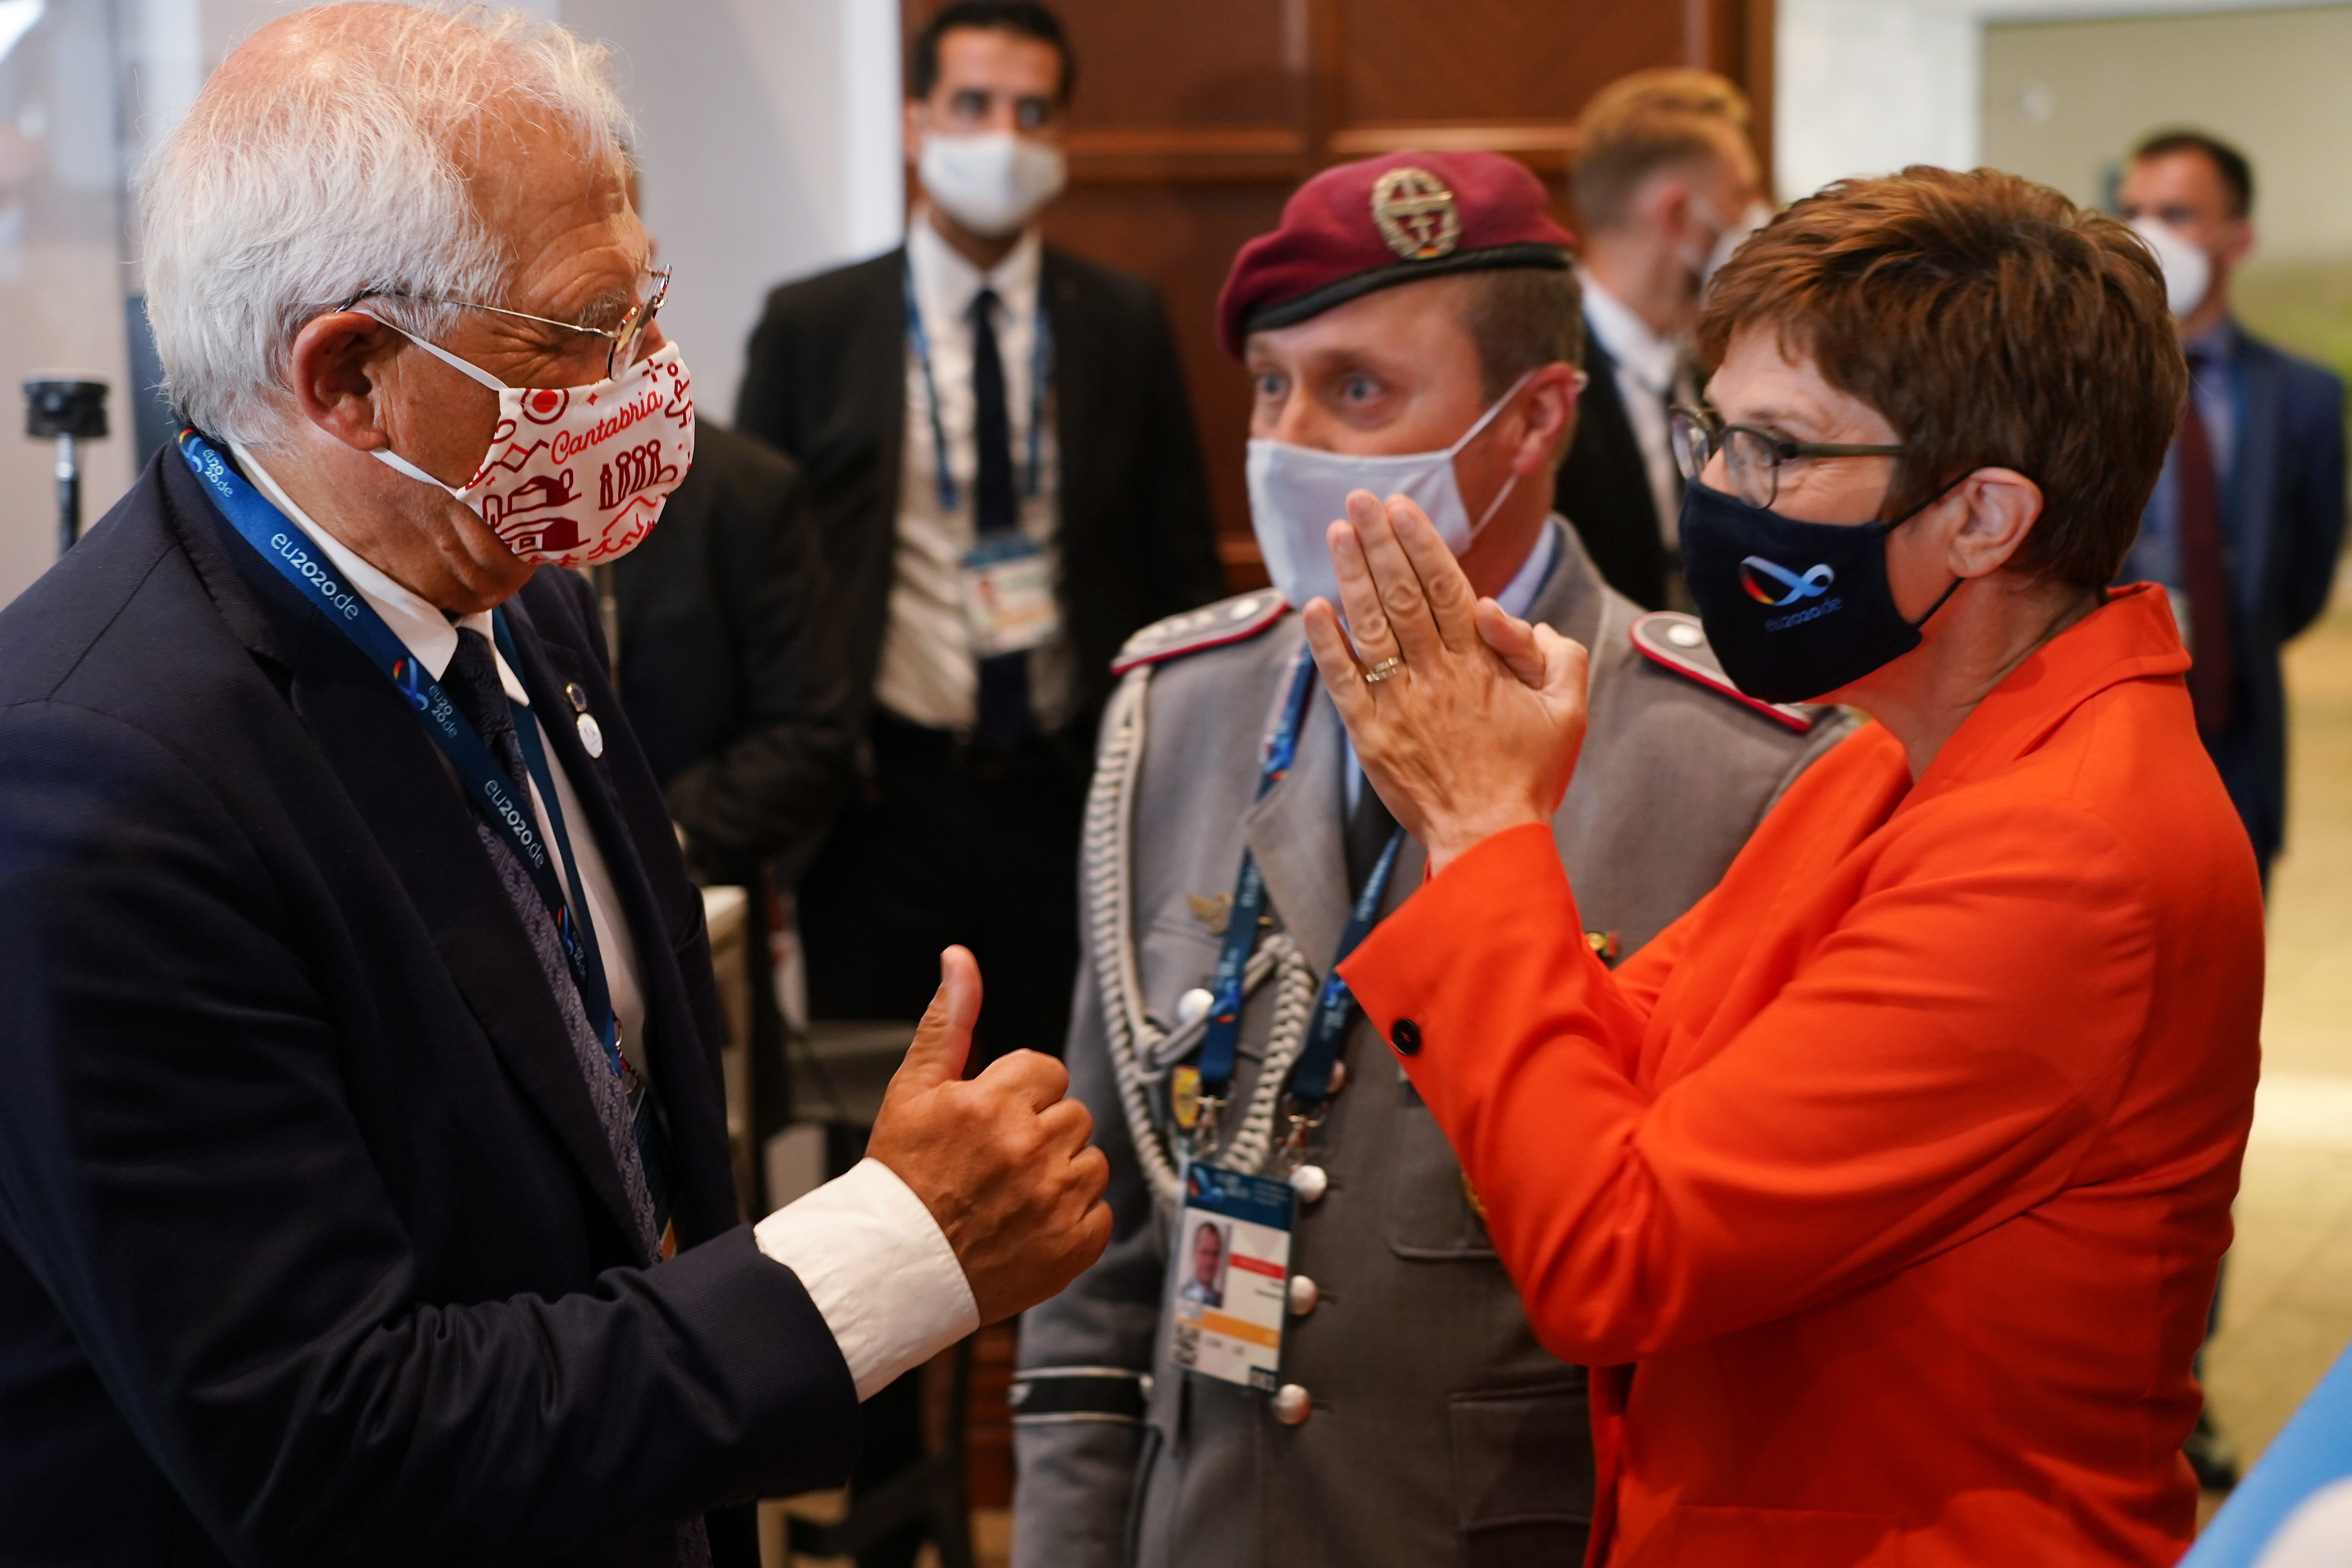 German Defence Minister Annegret-Kramp Karrenbauer, right, greets Josep Borell, left, high representative of the European Union for foreign affairs and security policy, at a meeting of EU defense ministers on Aug. 26, 2020, in Berlin. (Sean Gallup/Getty Images)